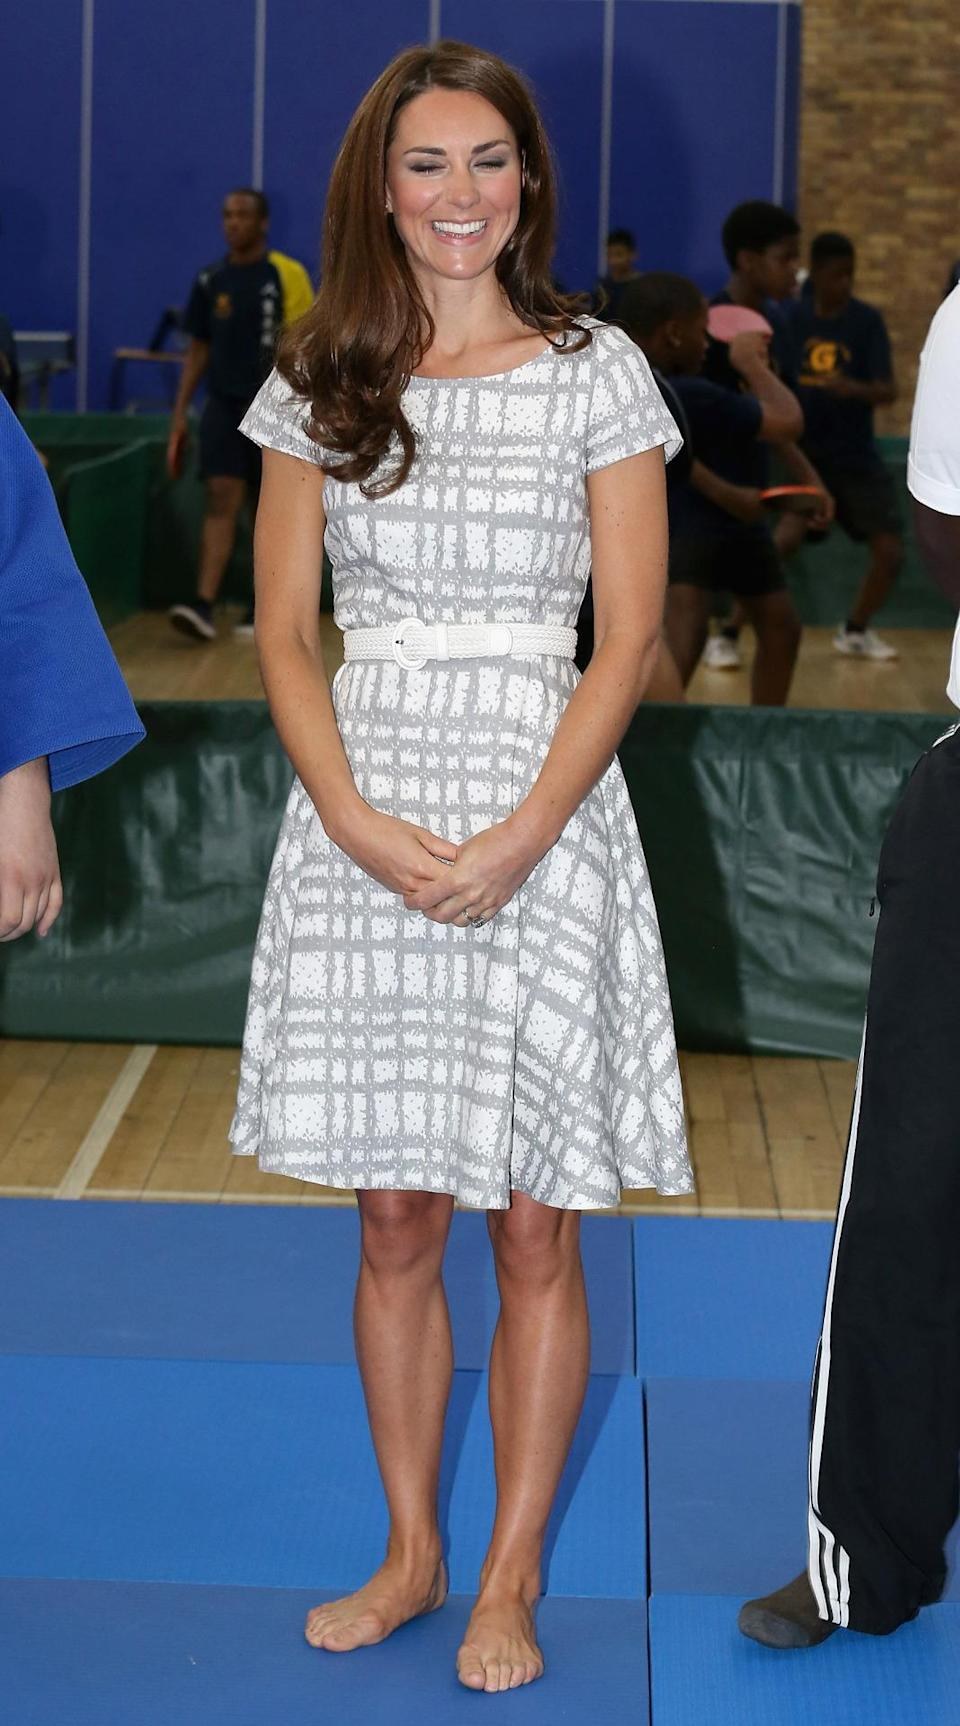 <p>The Duchess attended a sport launch in London dressed in a printed summer dress by Hobbs. She paired the dress with a braided white belt.</p><p><i>[Photo: PA]</i></p>